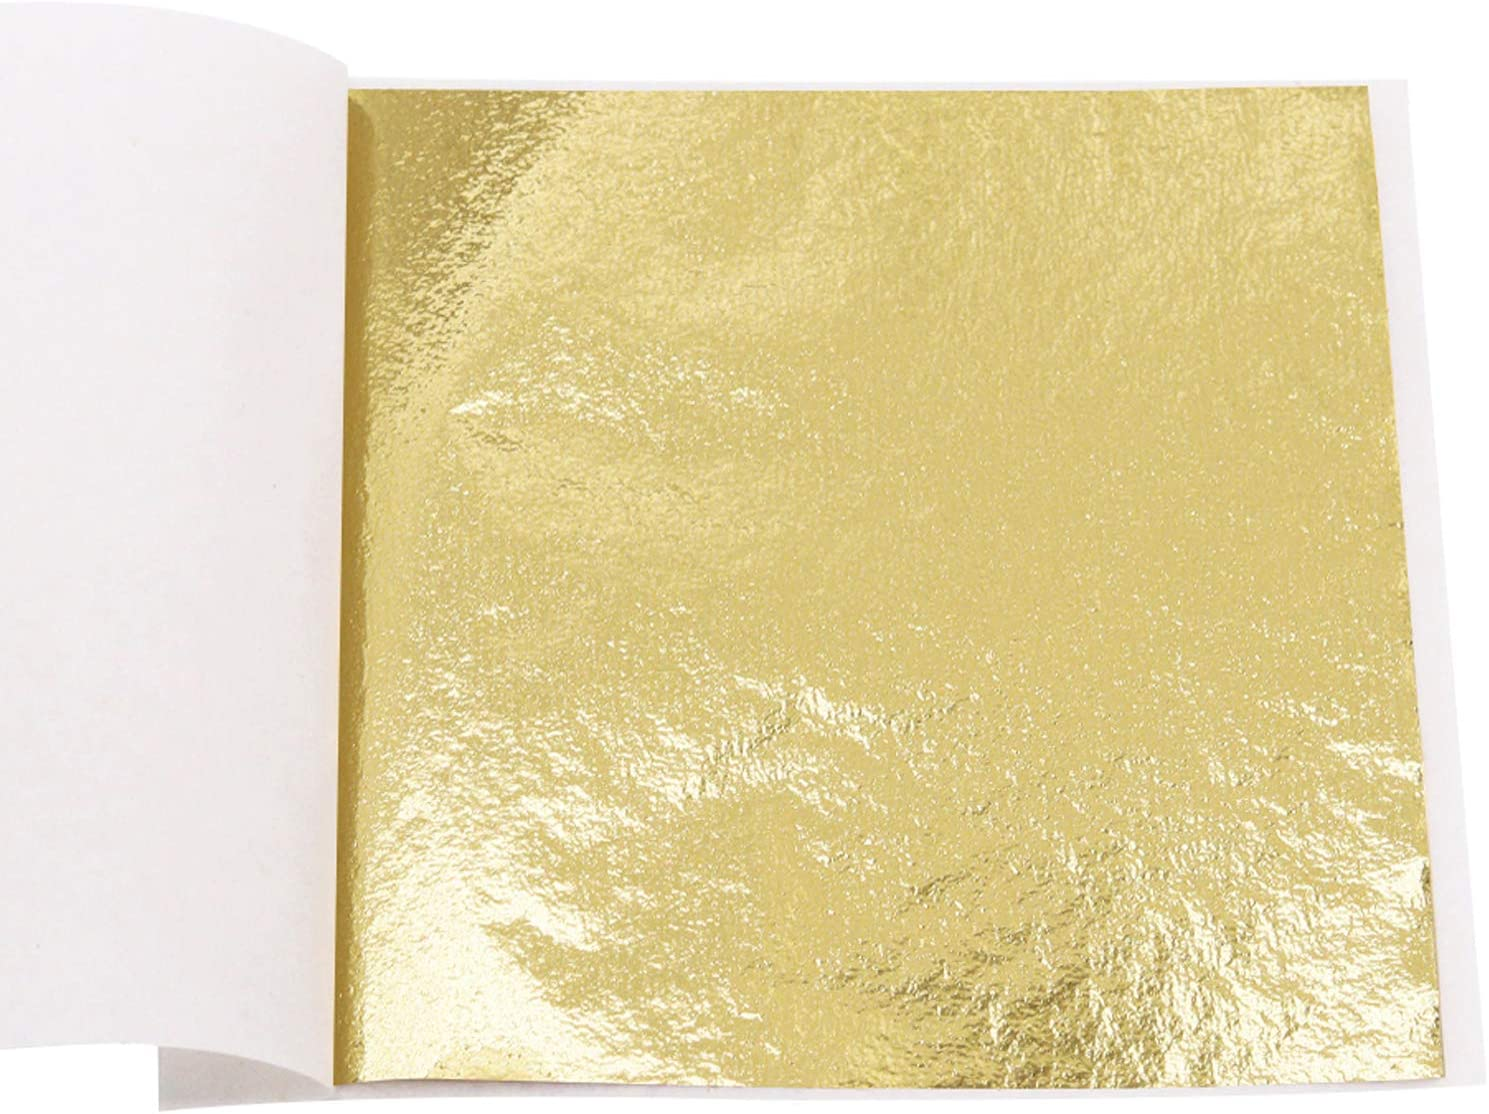 KINNO 100 Sheets Imitation Gold Foil Sheets - K Gold Leaf Paper for Furniture, Arts Decoration, Handcrafts, Picture Frames, Gilding, Nails, Paintings, Slime, Wall, Line, DIY, 3.15 by 3.35 Inches